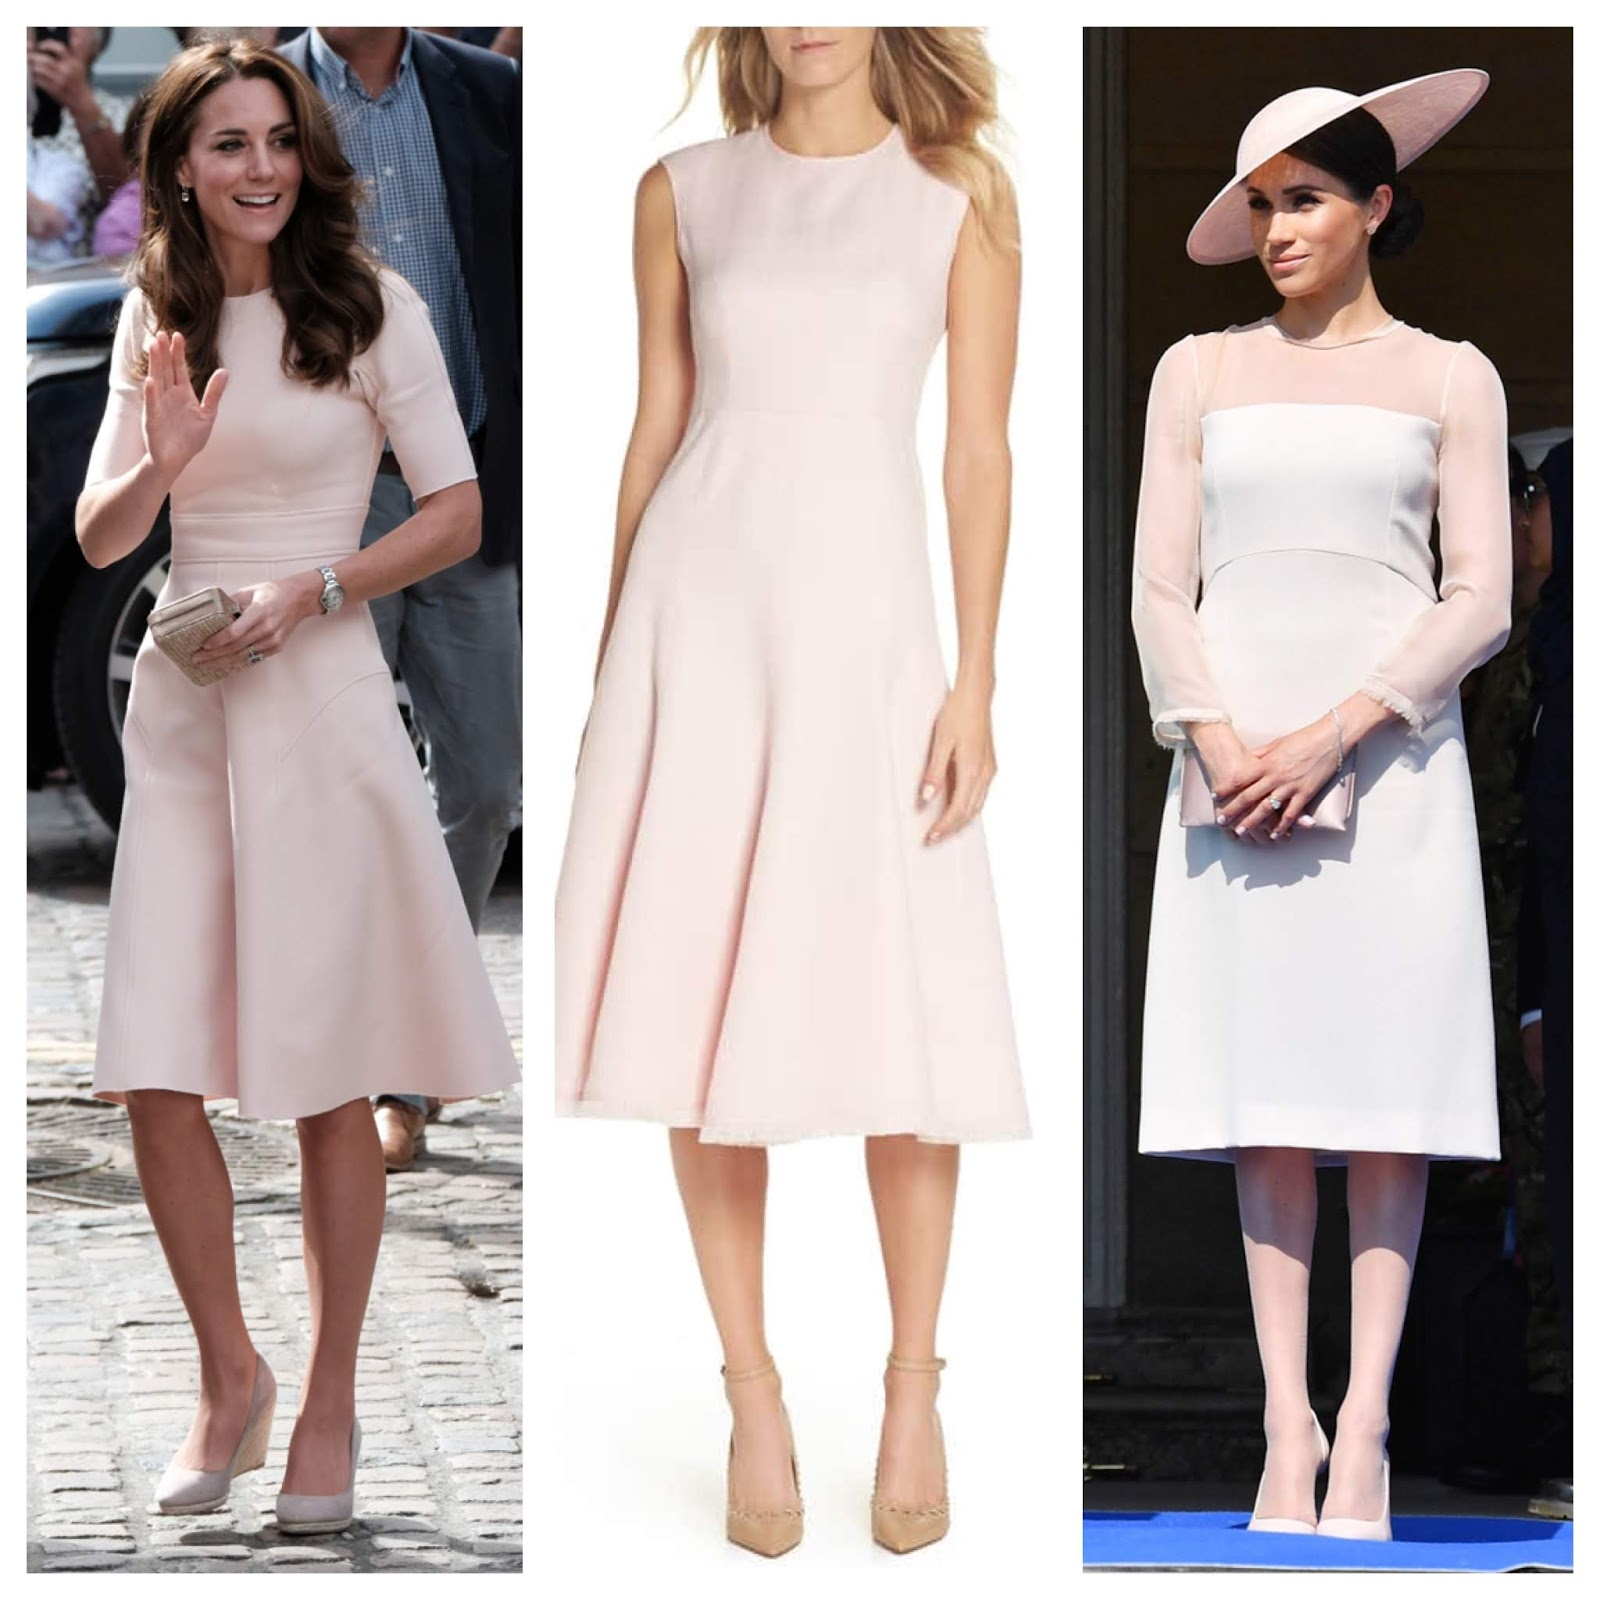 duchess dress in blush pink